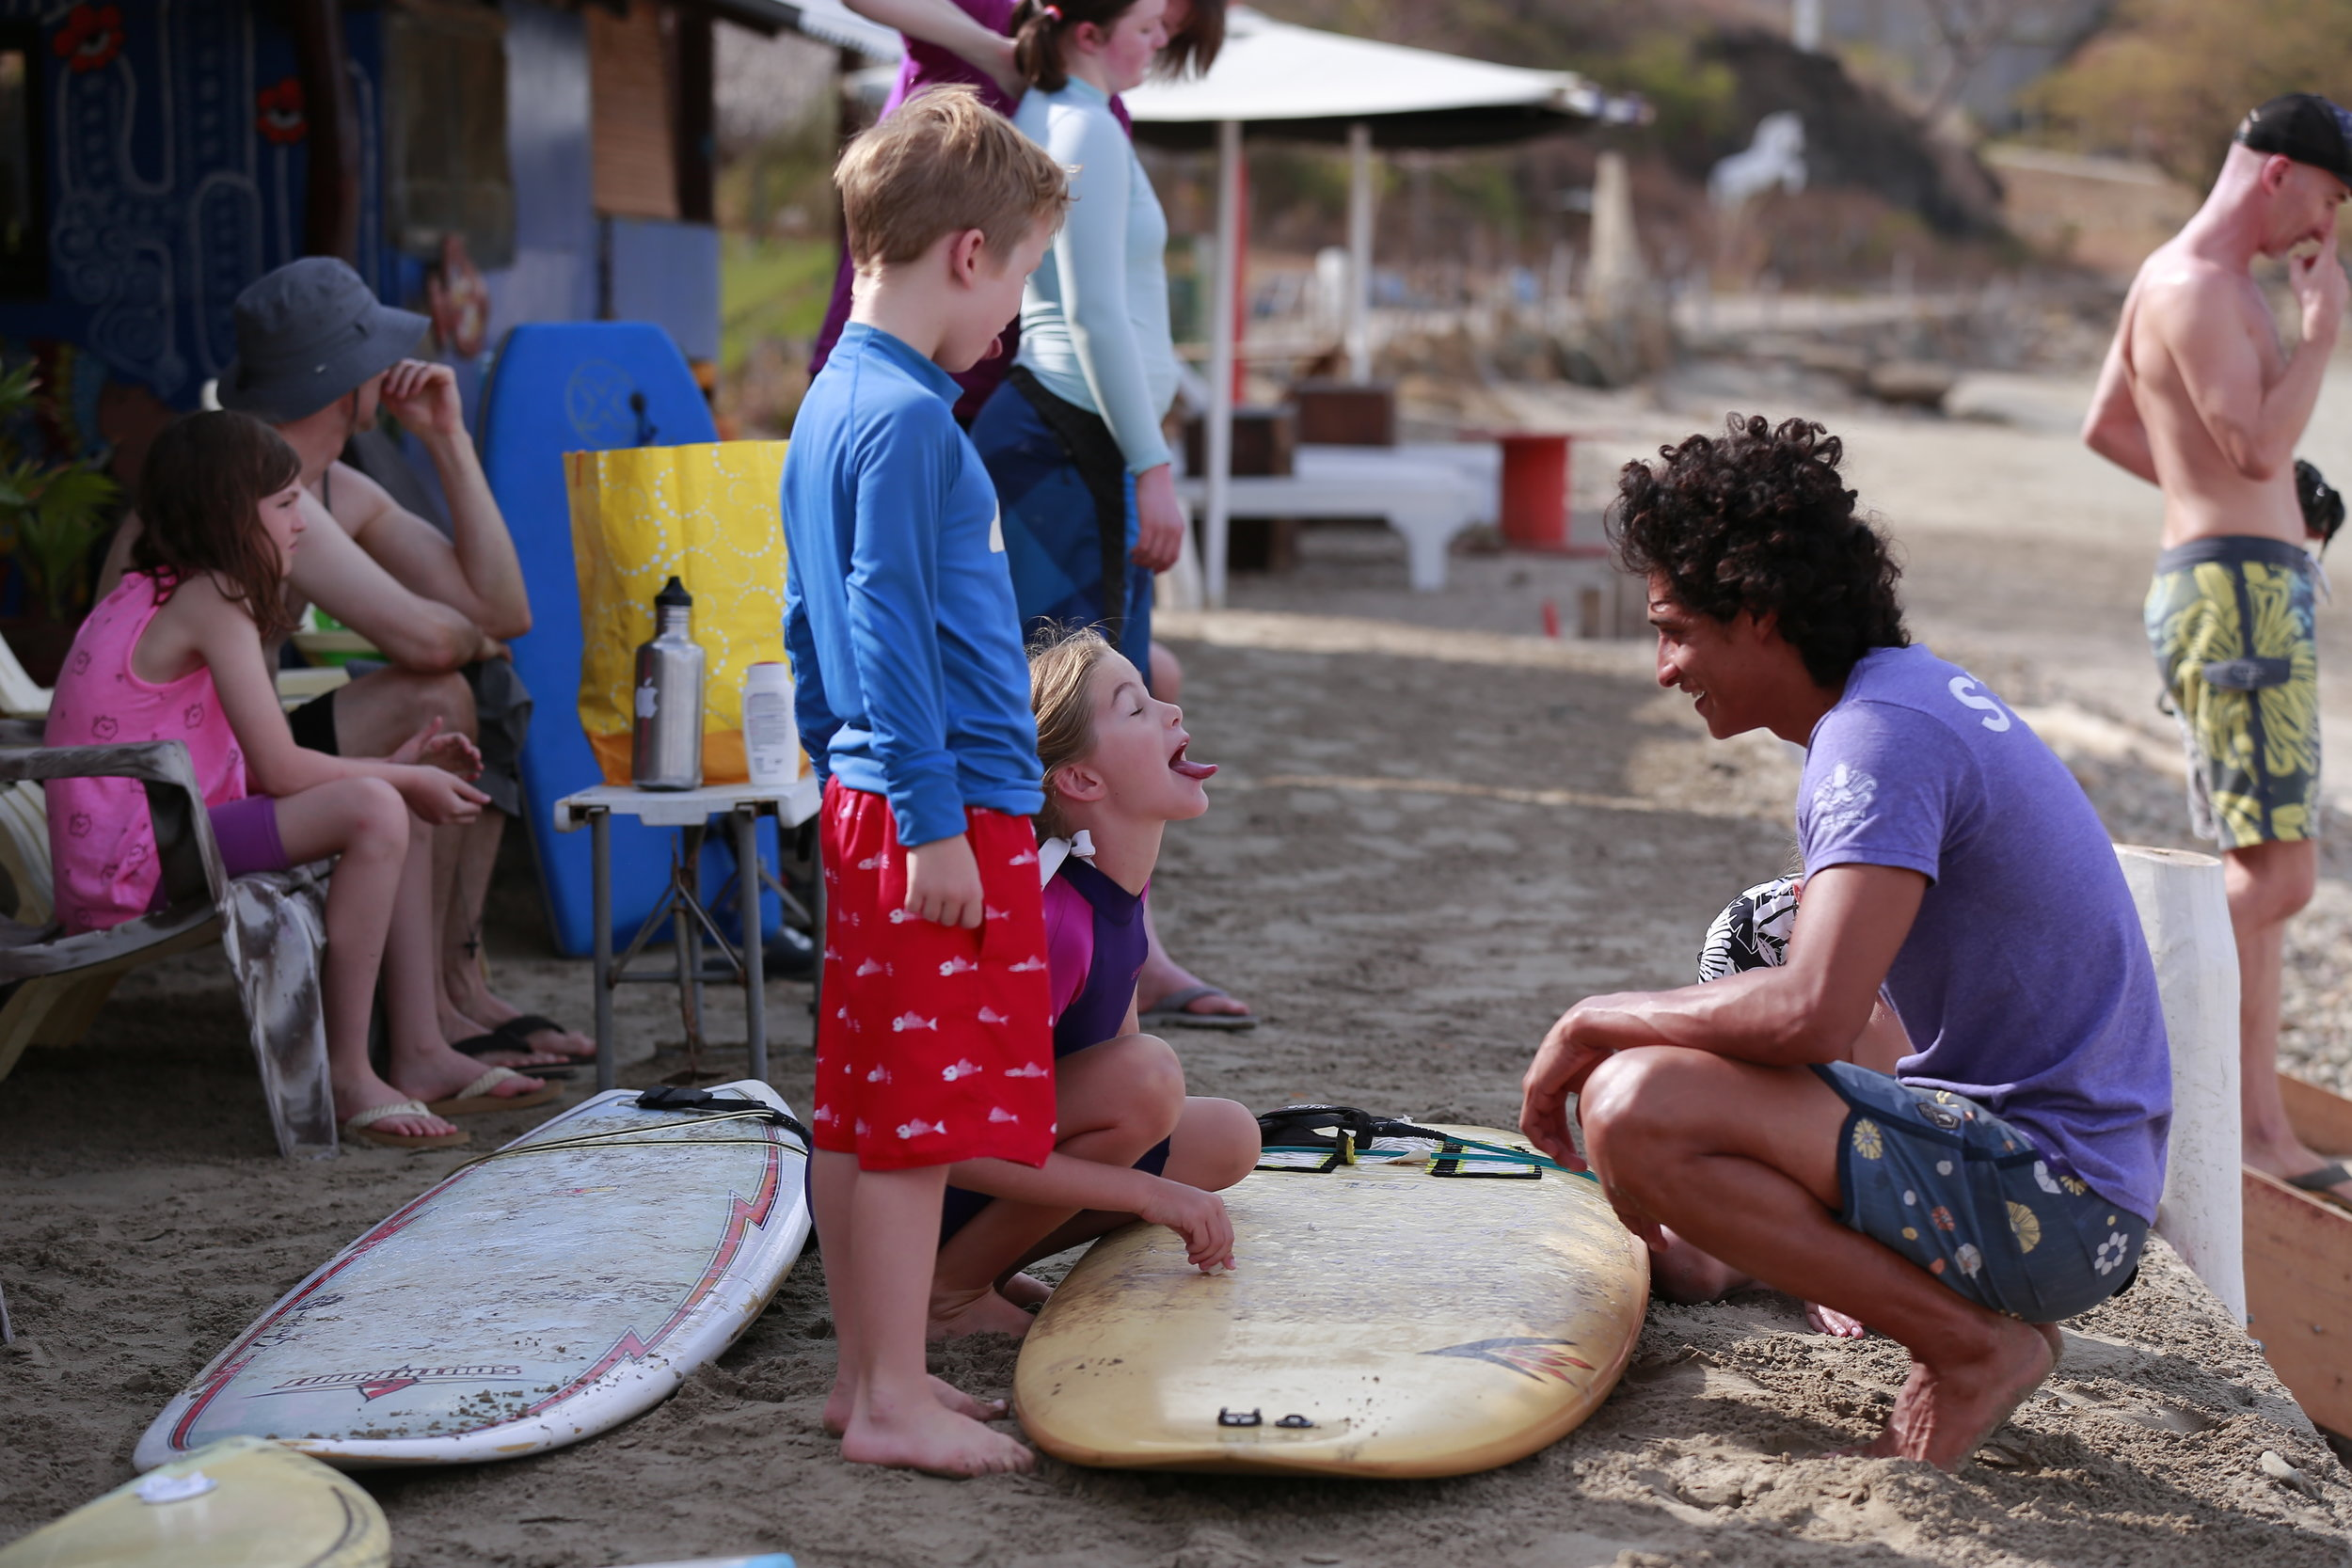 My kids learning to surf and wax their boards